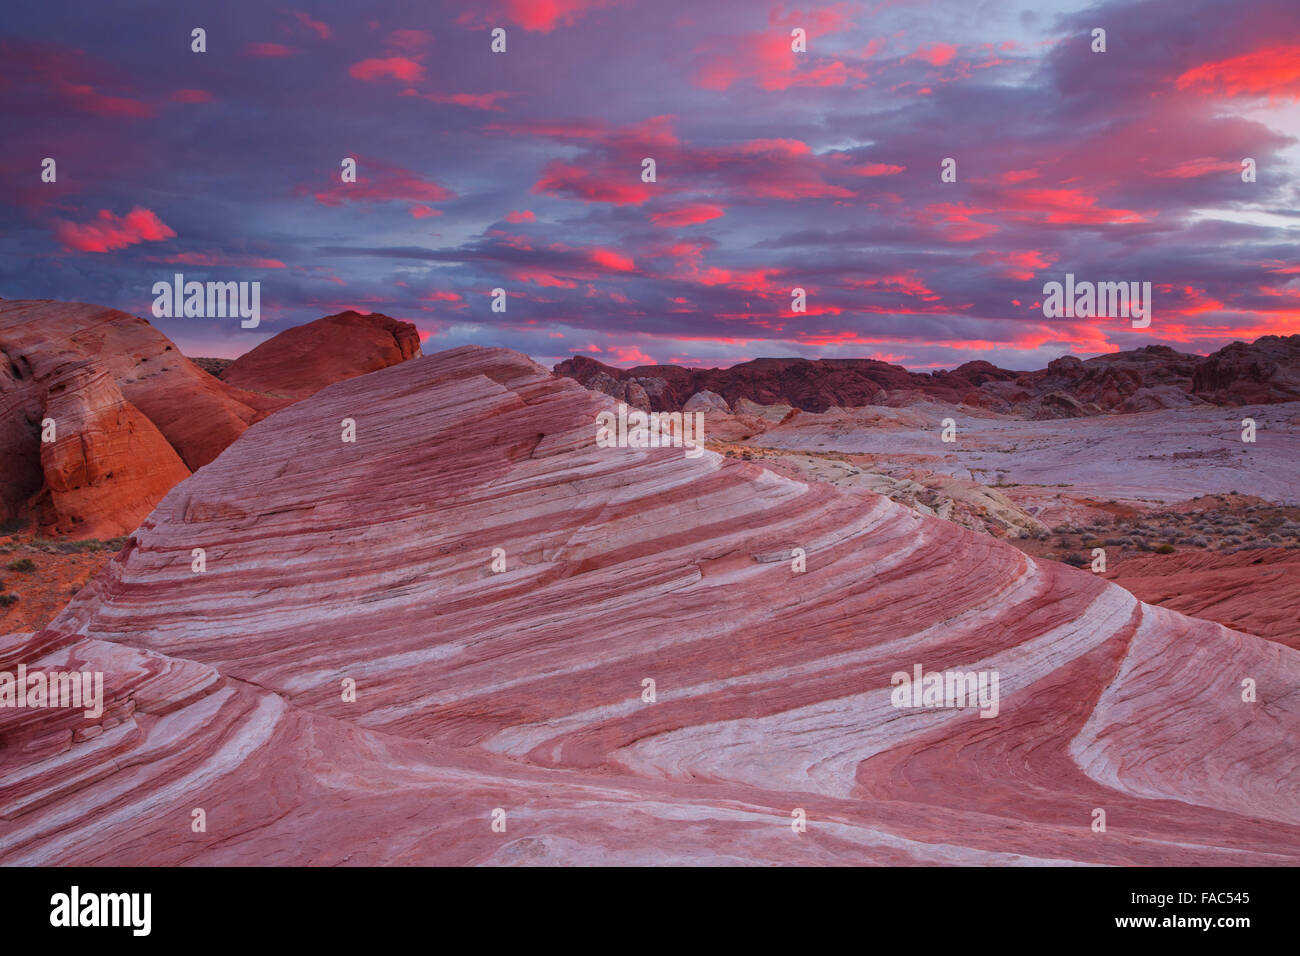 Fire Wave, Valley of Fire State Park, near Las Vegas, Nevada. - Stock Image